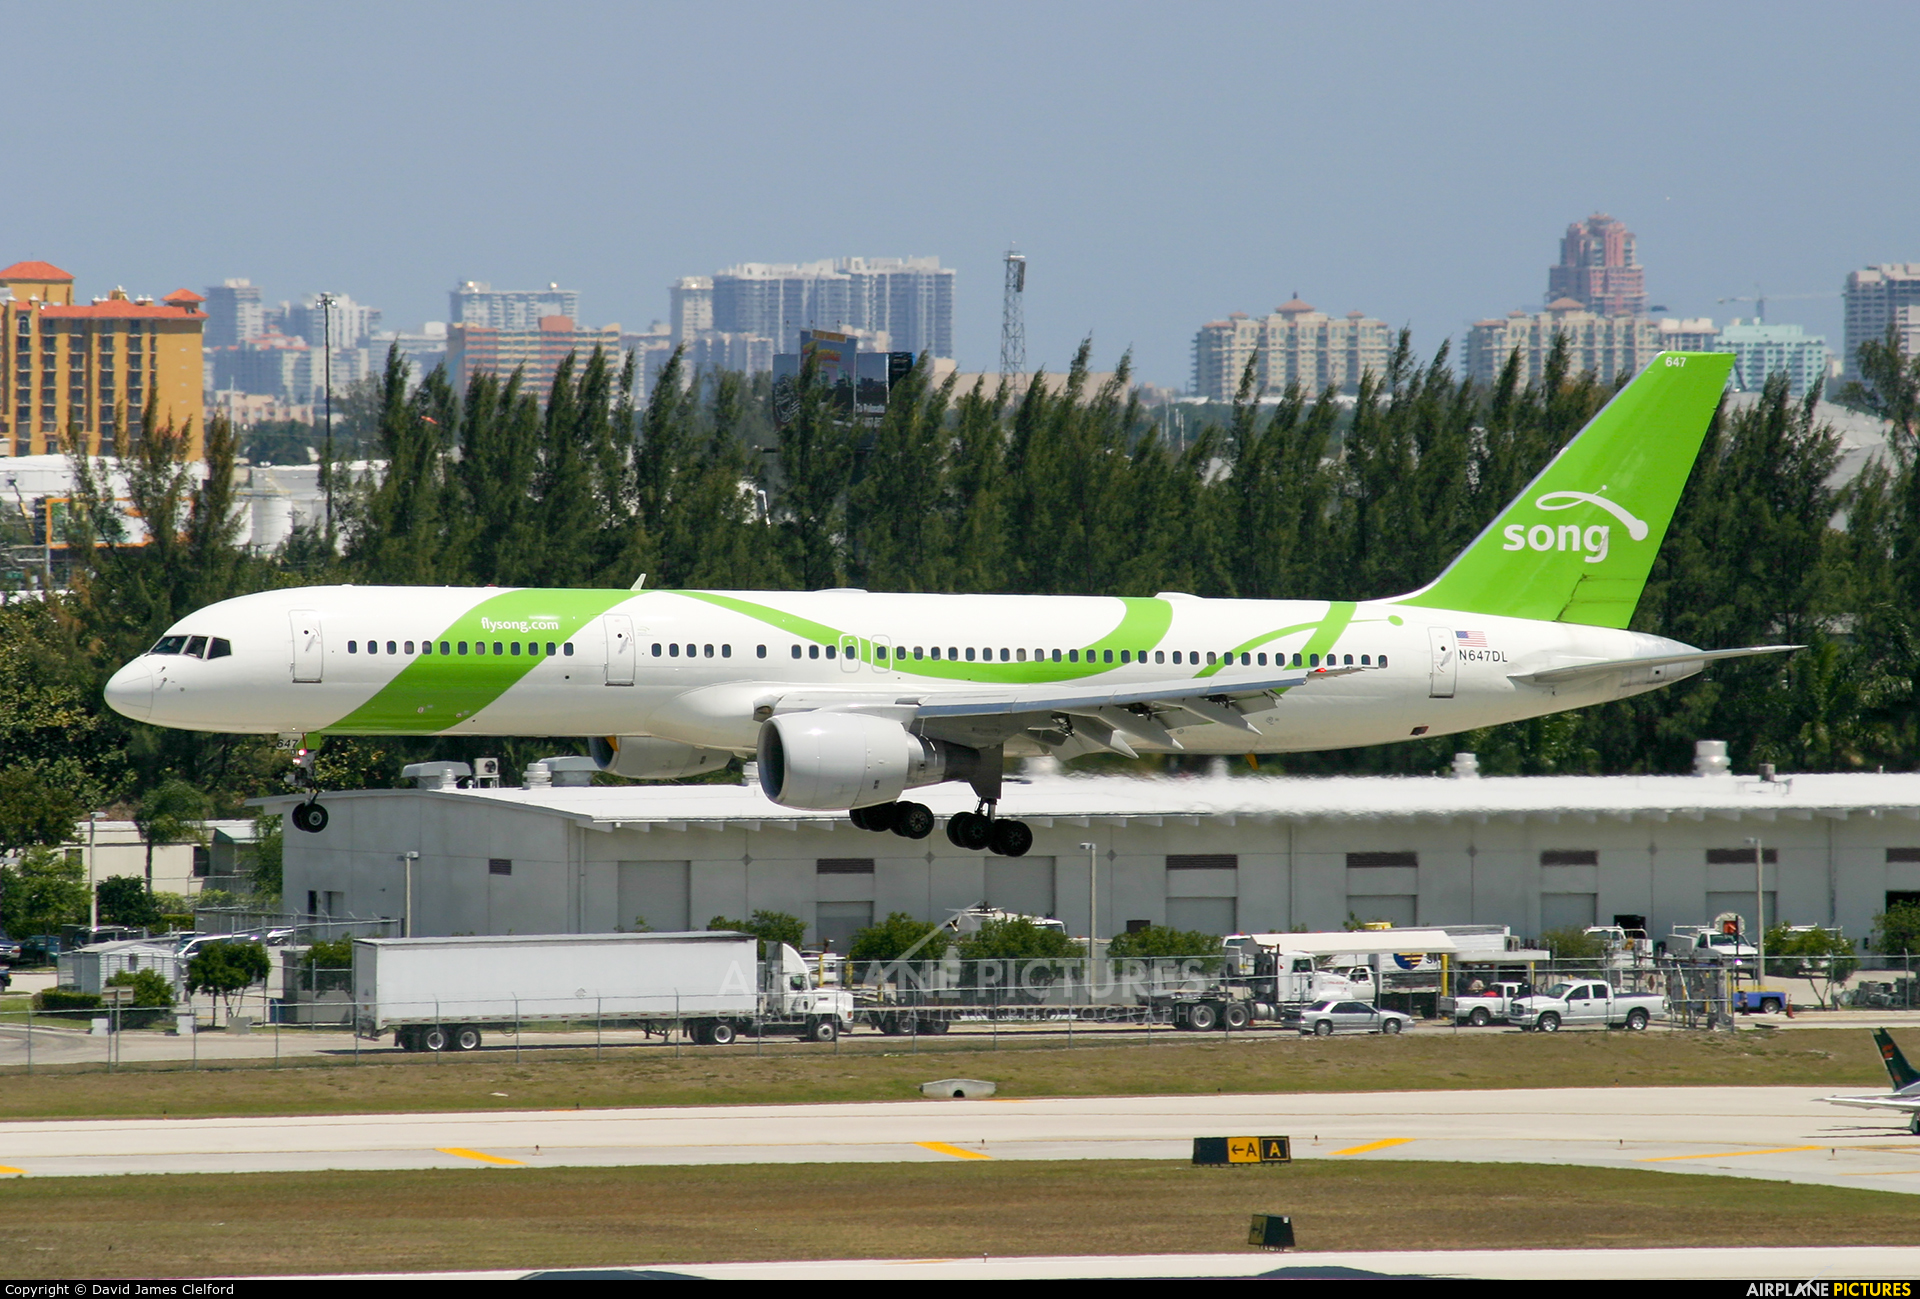 Song Airlines N647DL aircraft at Fort Lauderdale - Hollywood Intl